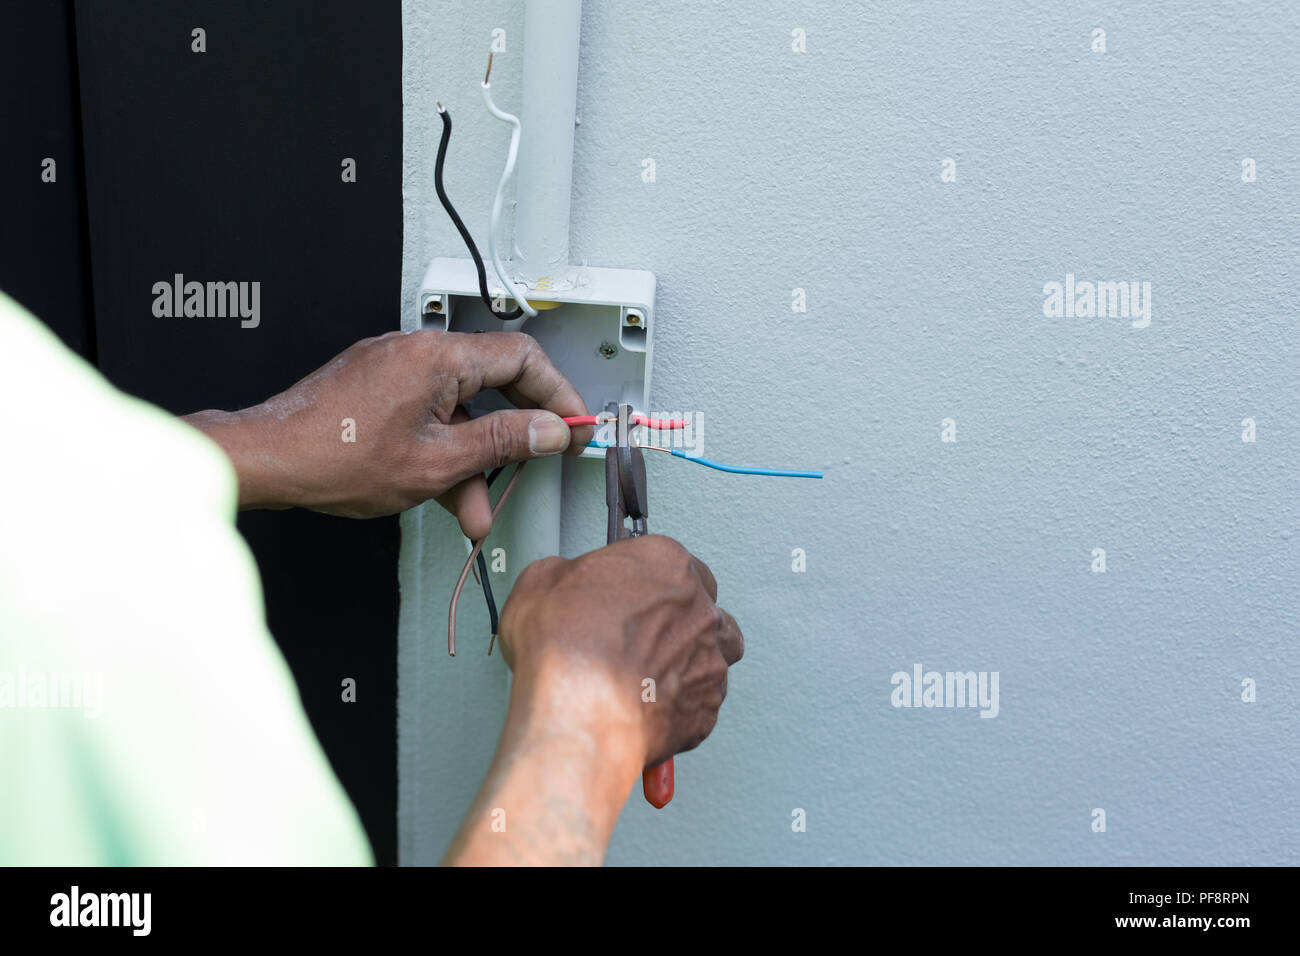 Electric Metal Wire Cutter Stock Photos & Electric Metal Wire Cutter ...